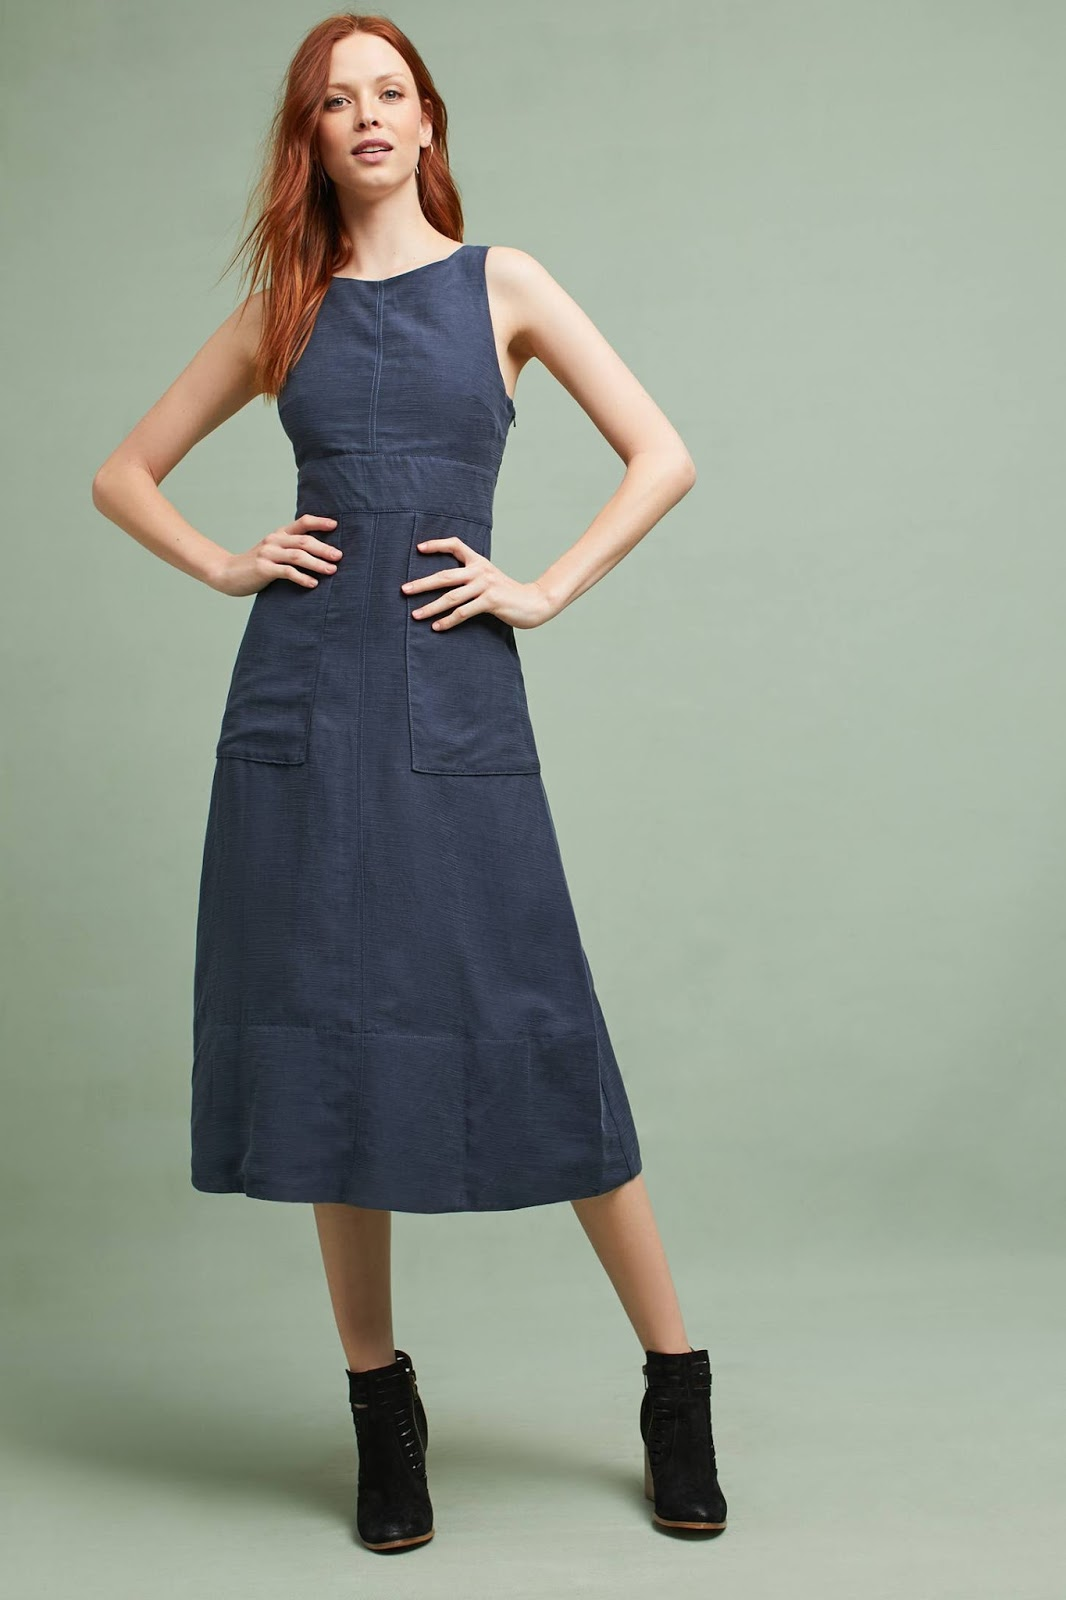 d260f8a34ffc Quick reviews of 25+ Anthropologie dresses that are 20% off today ...